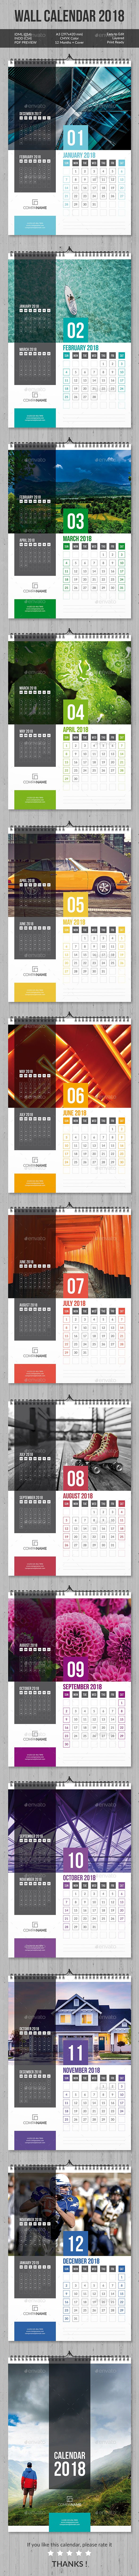 Wall Calendar 2018 - #Calendars #Stationery Download here:  https://graphicriver.net/item/wall-calendar-2018/20383709?ref=alena994